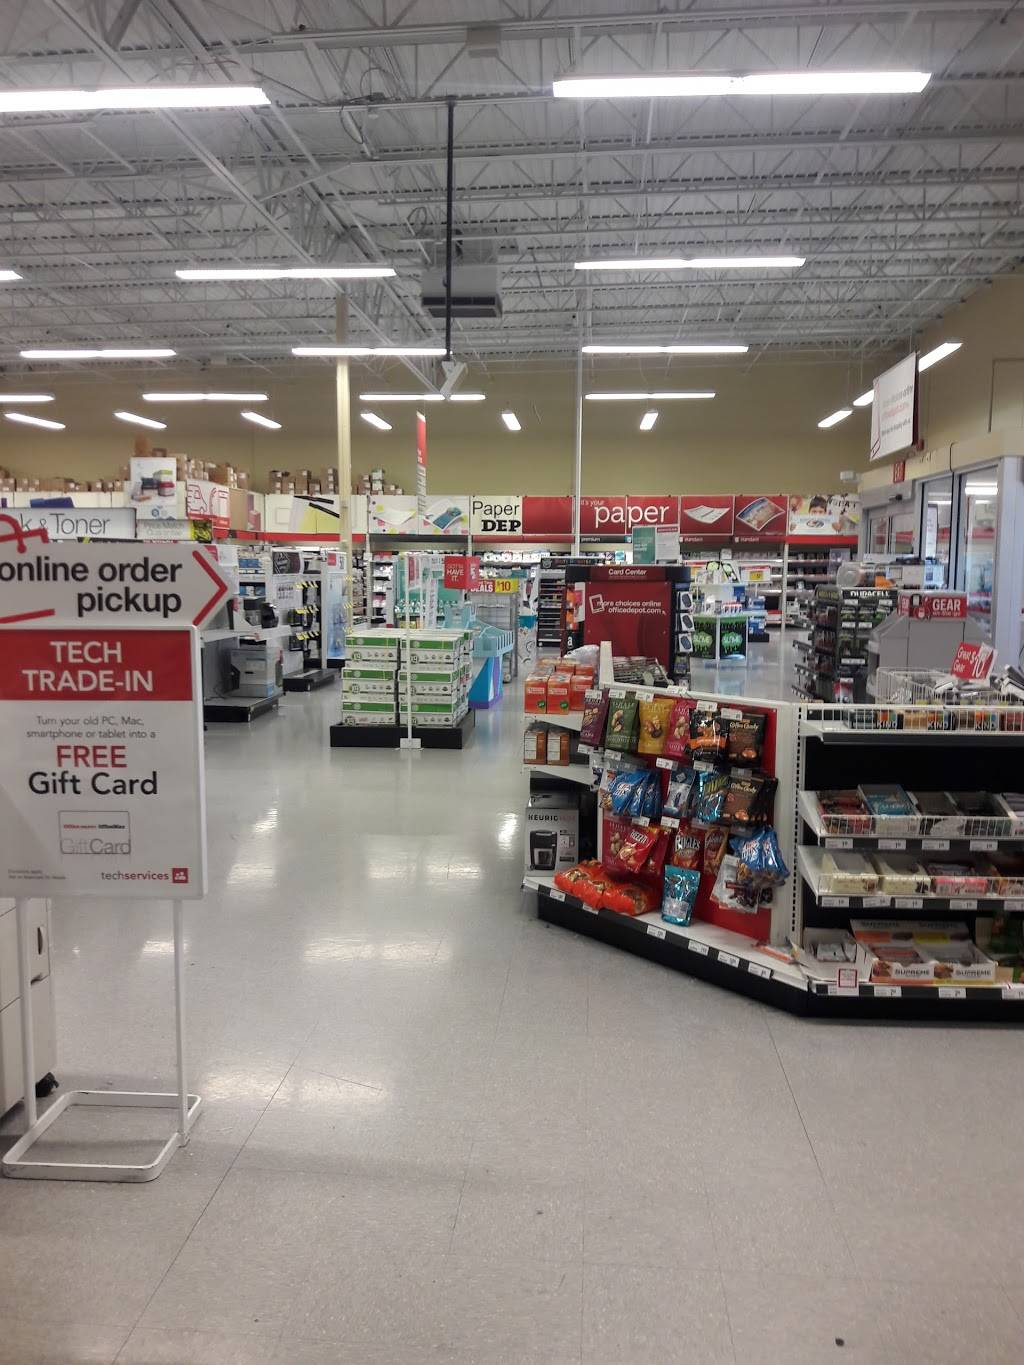 Office Depot - electronics store  | Photo 5 of 10 | Address: 401 Carroll St, Fort Worth, TX 76107, USA | Phone: (817) 885-7868